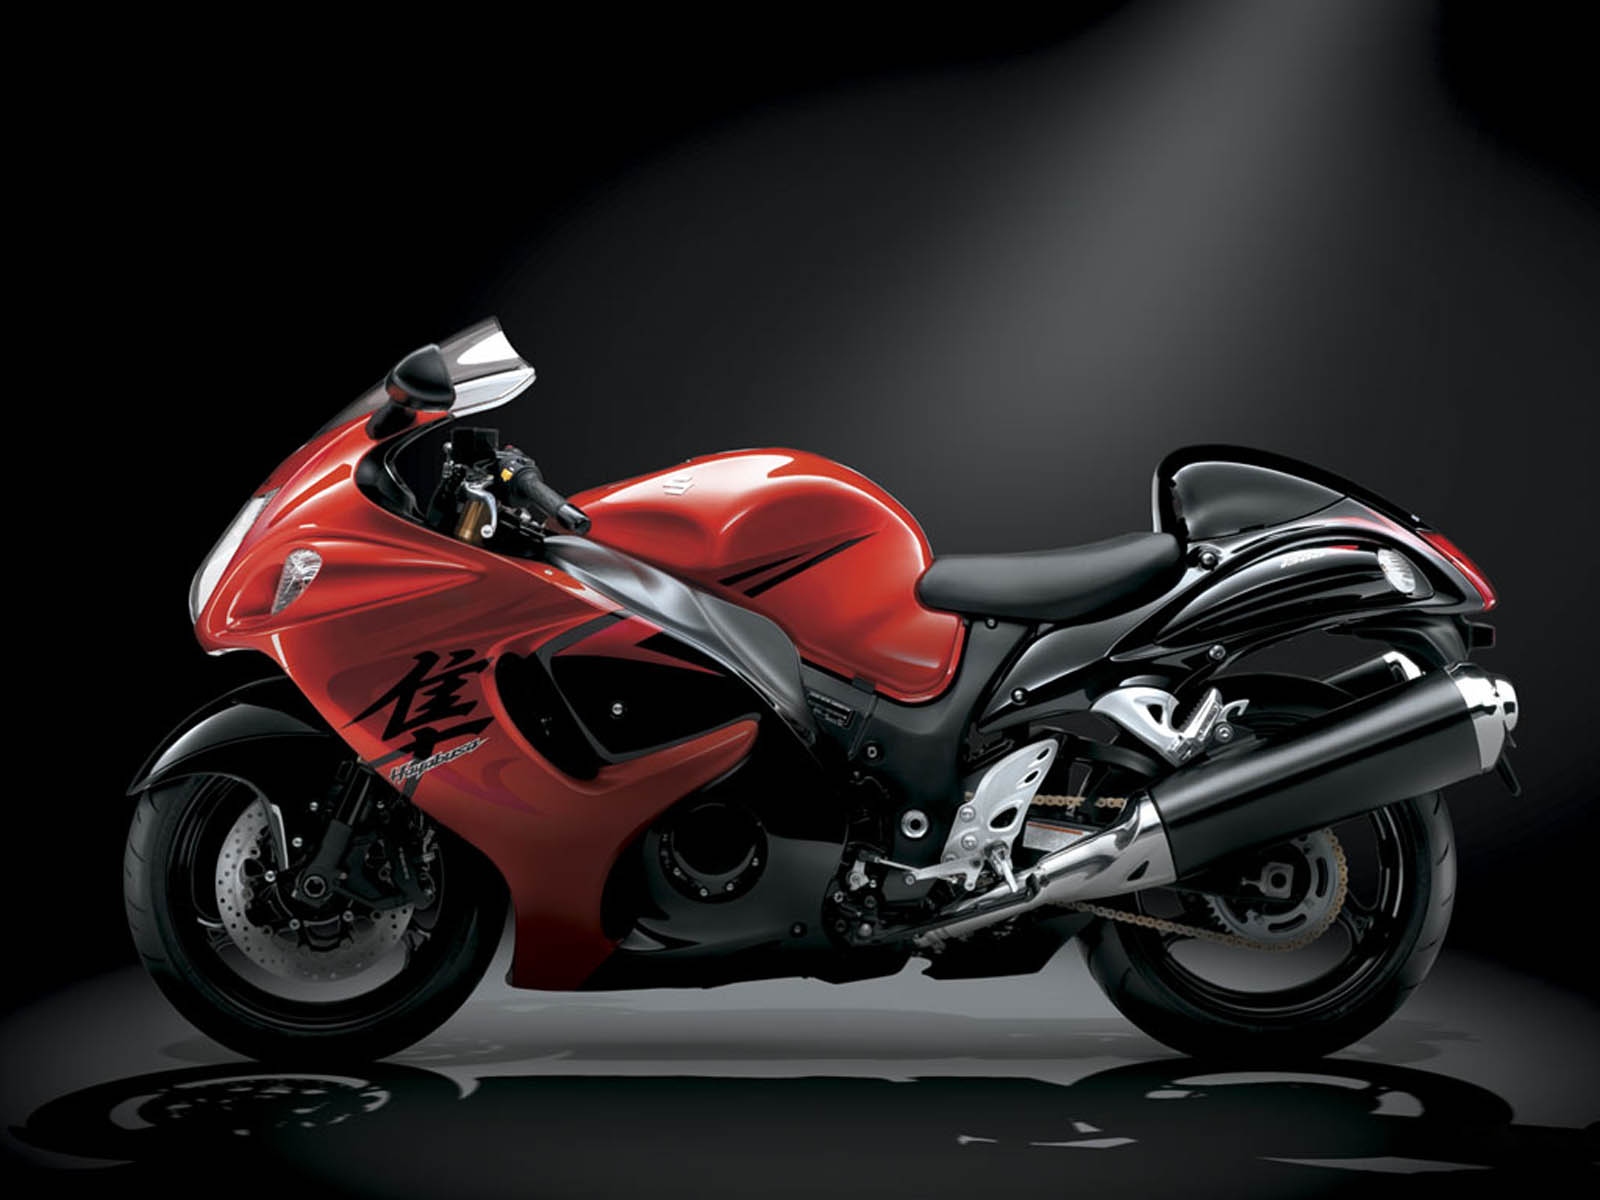 You Are Watching The Suzuki Hayabusa GSX1300R Bike Wallpapers, Suzuki  Hayabusa GSX1300R Bike Desktop Wallpapers, Suzuki Hayabusa GSX1300R Bike  Backgrounds, ...